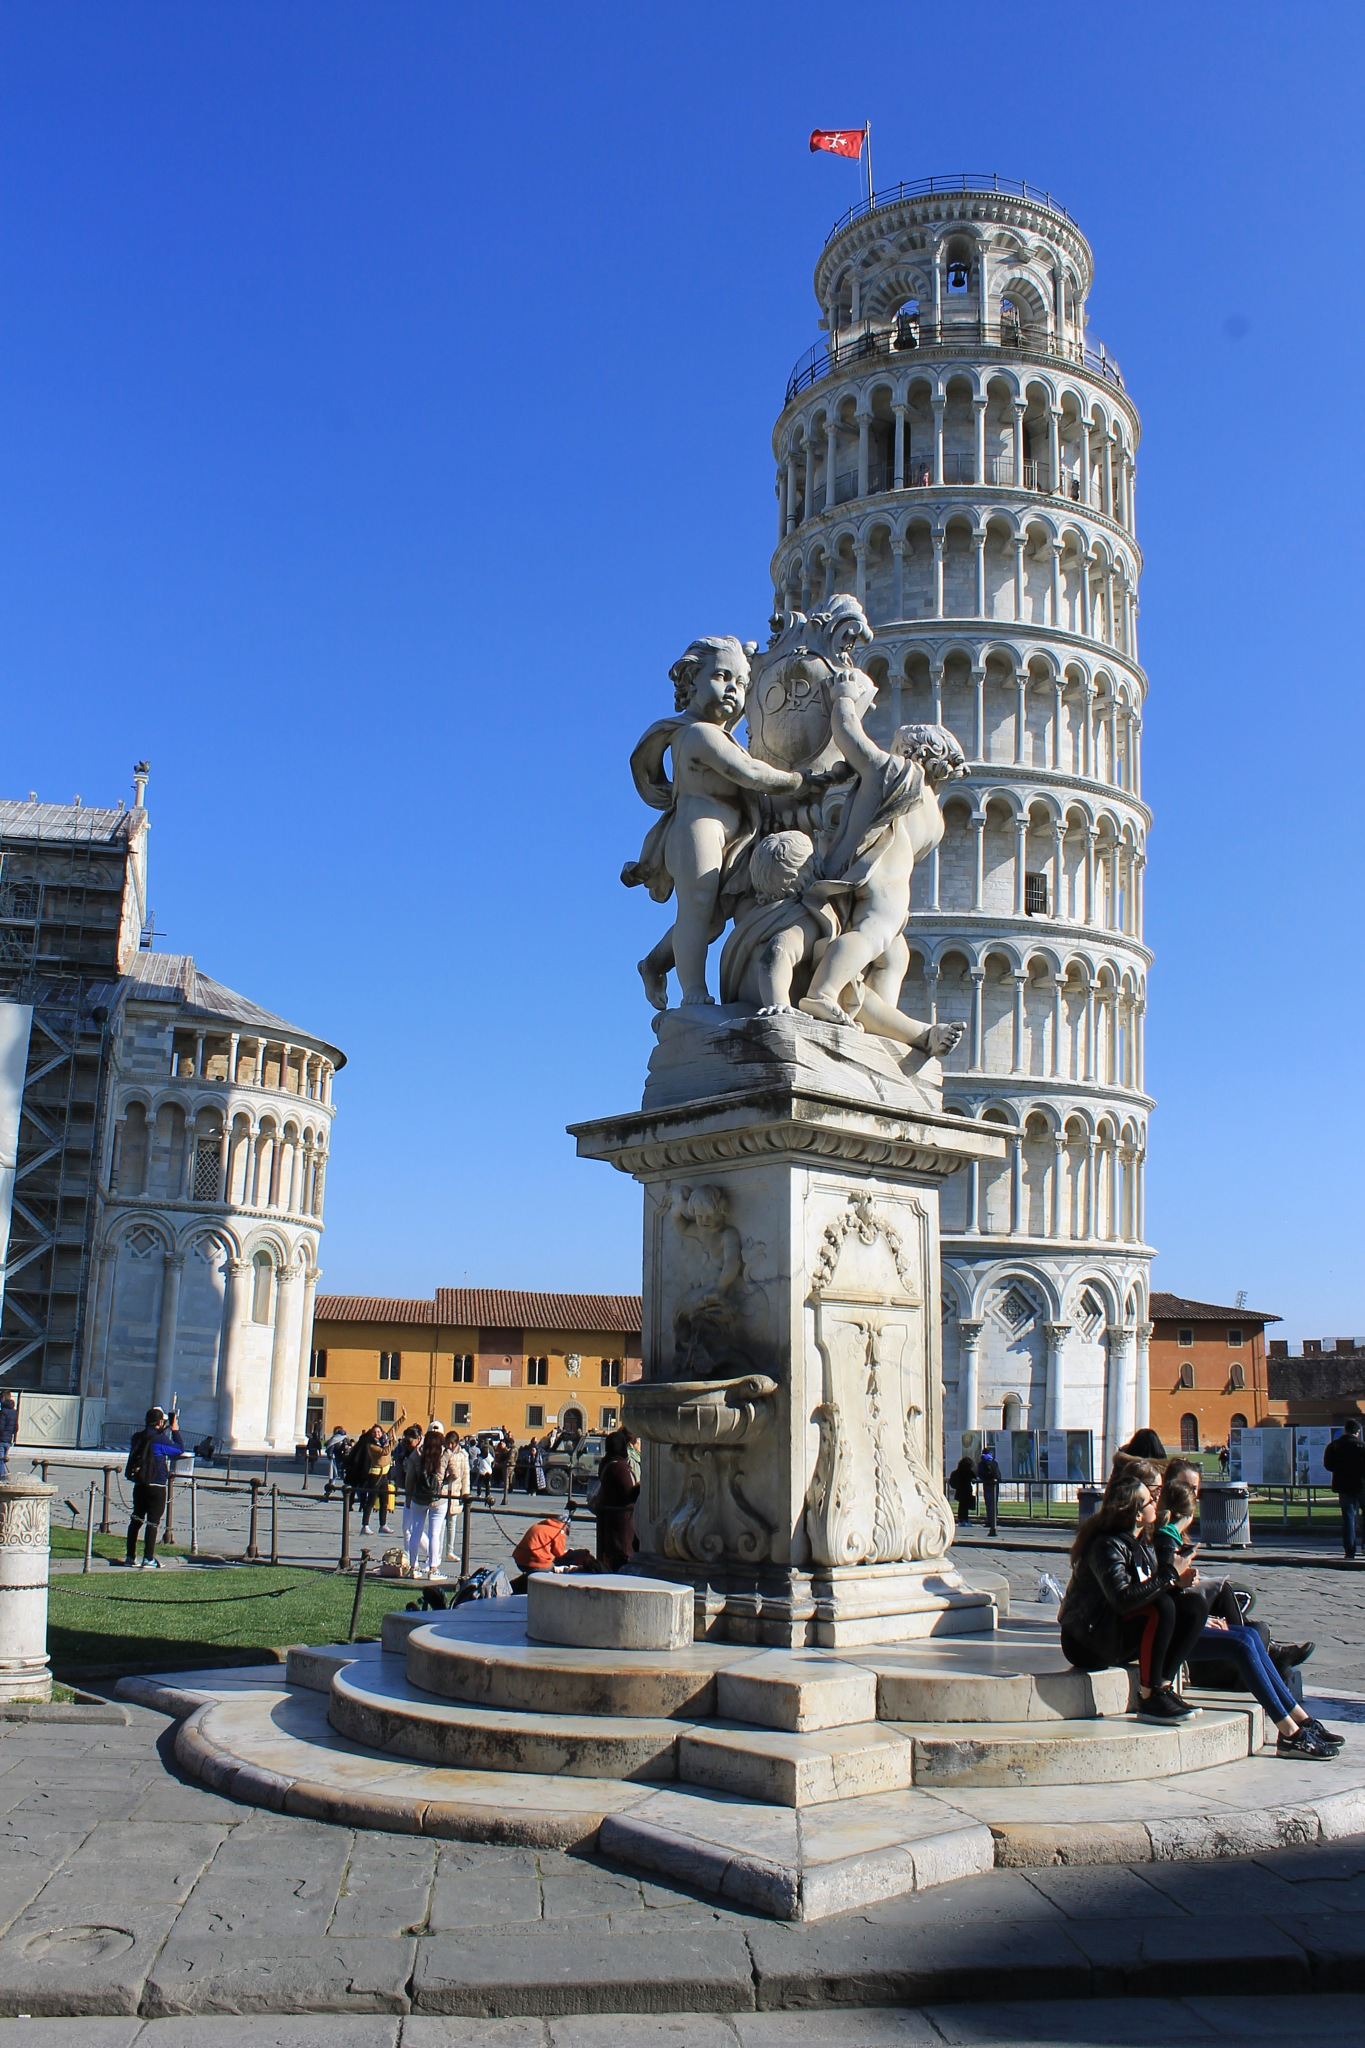 Statue and tower of Pisa by Clelia Sardu